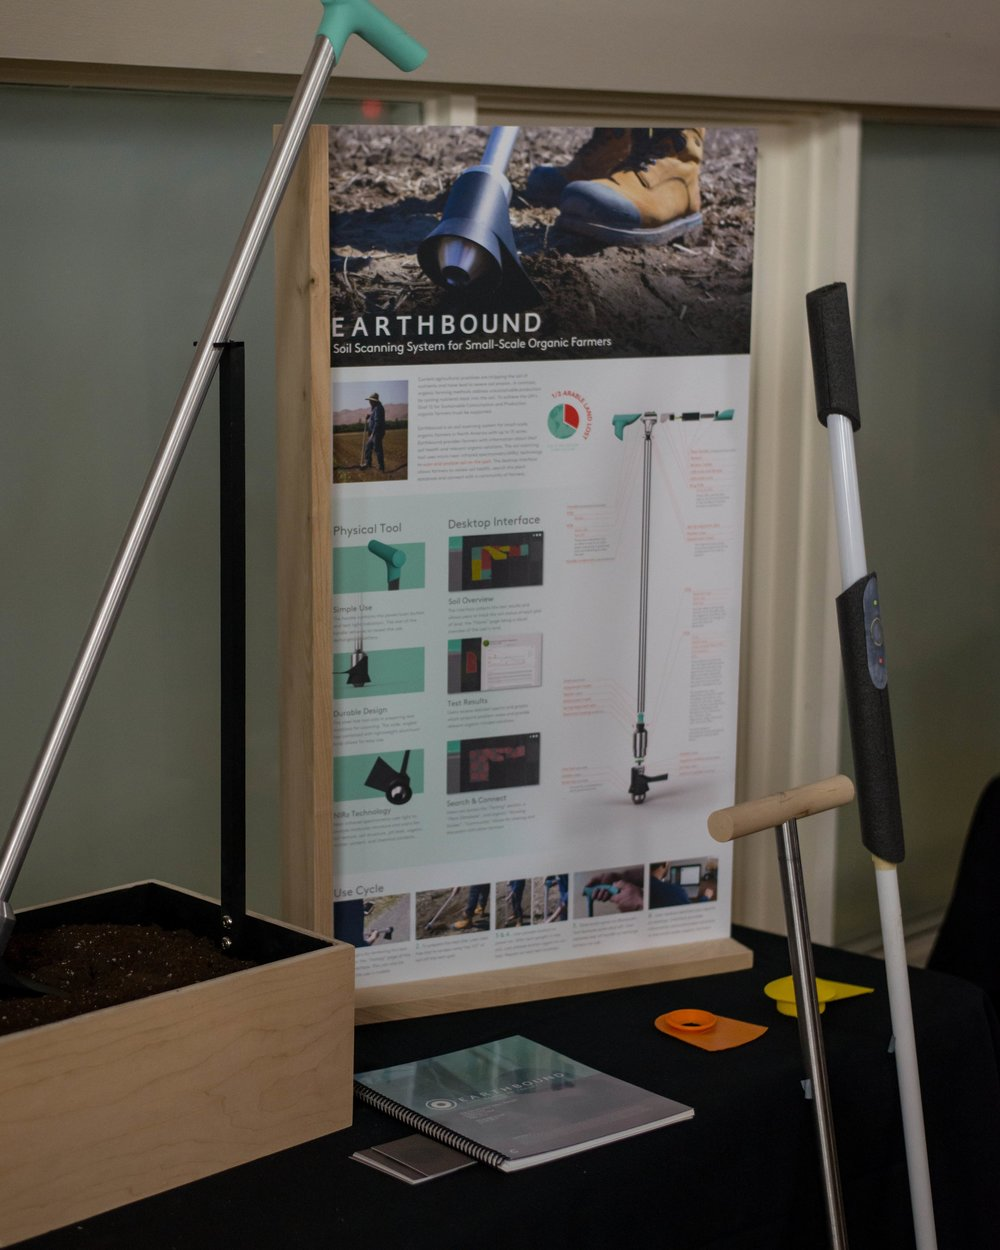 Earthbound on display at Rocket 2017.